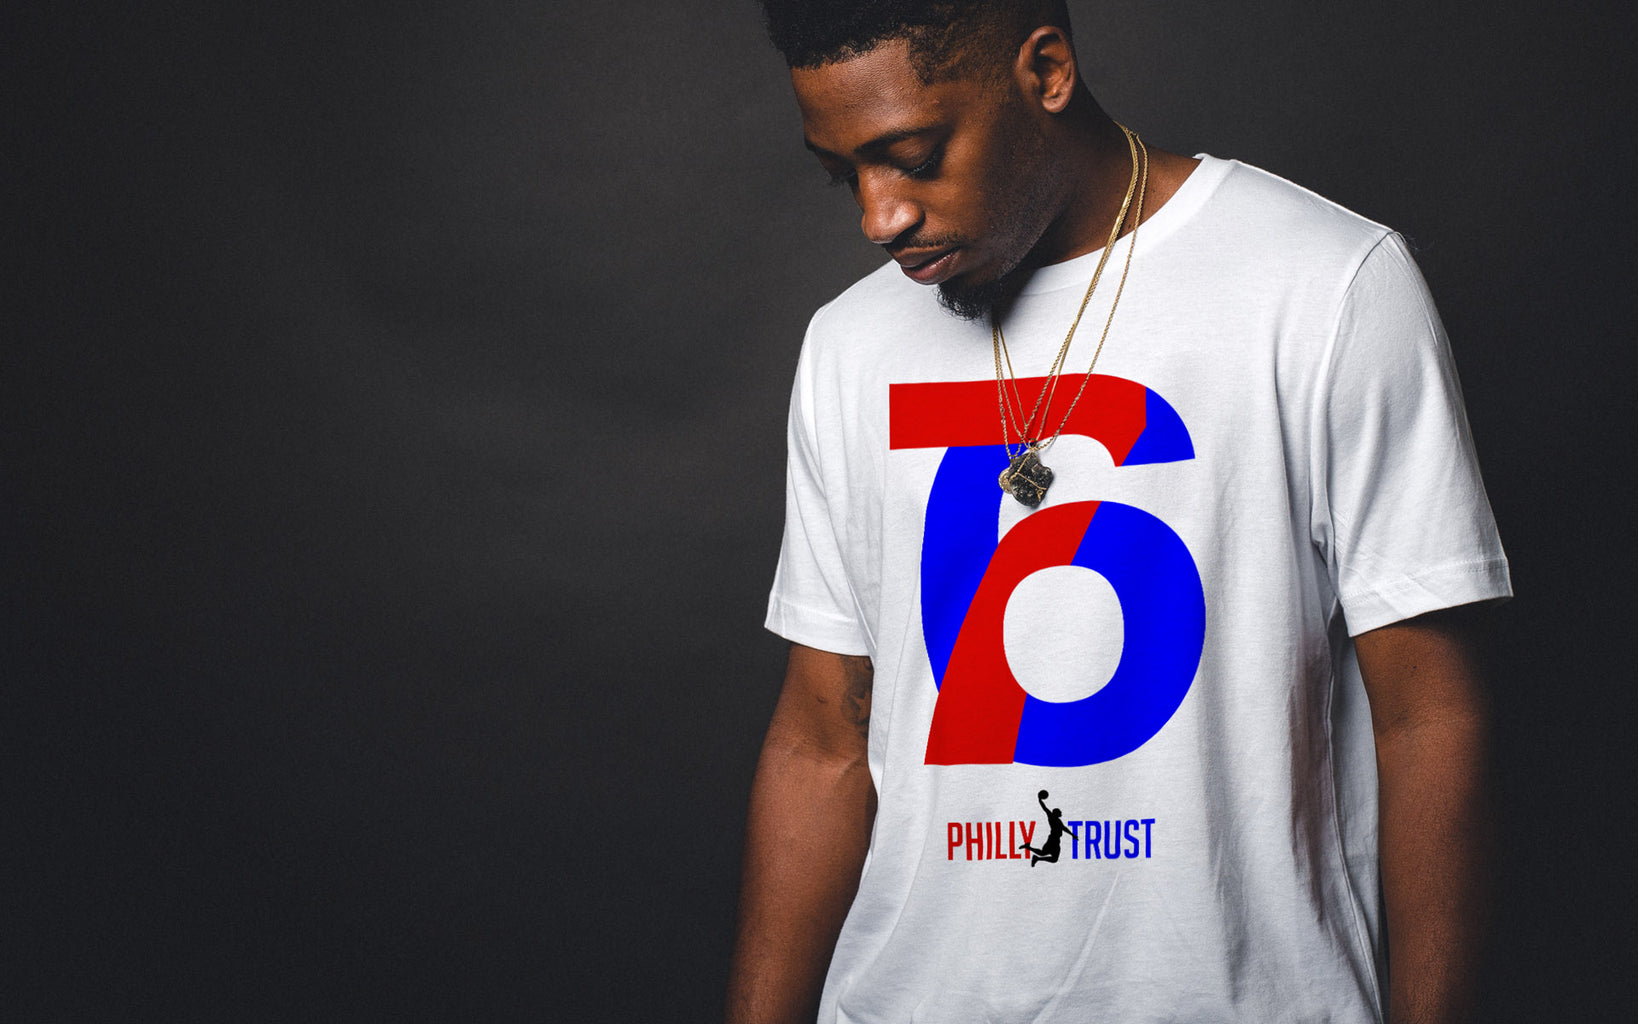 Sixers fans will love this exclusive design. The 7 intertwines with the 6 to make a beautifully balanced and simplistic symbol. Trust the process! Philly Trust!